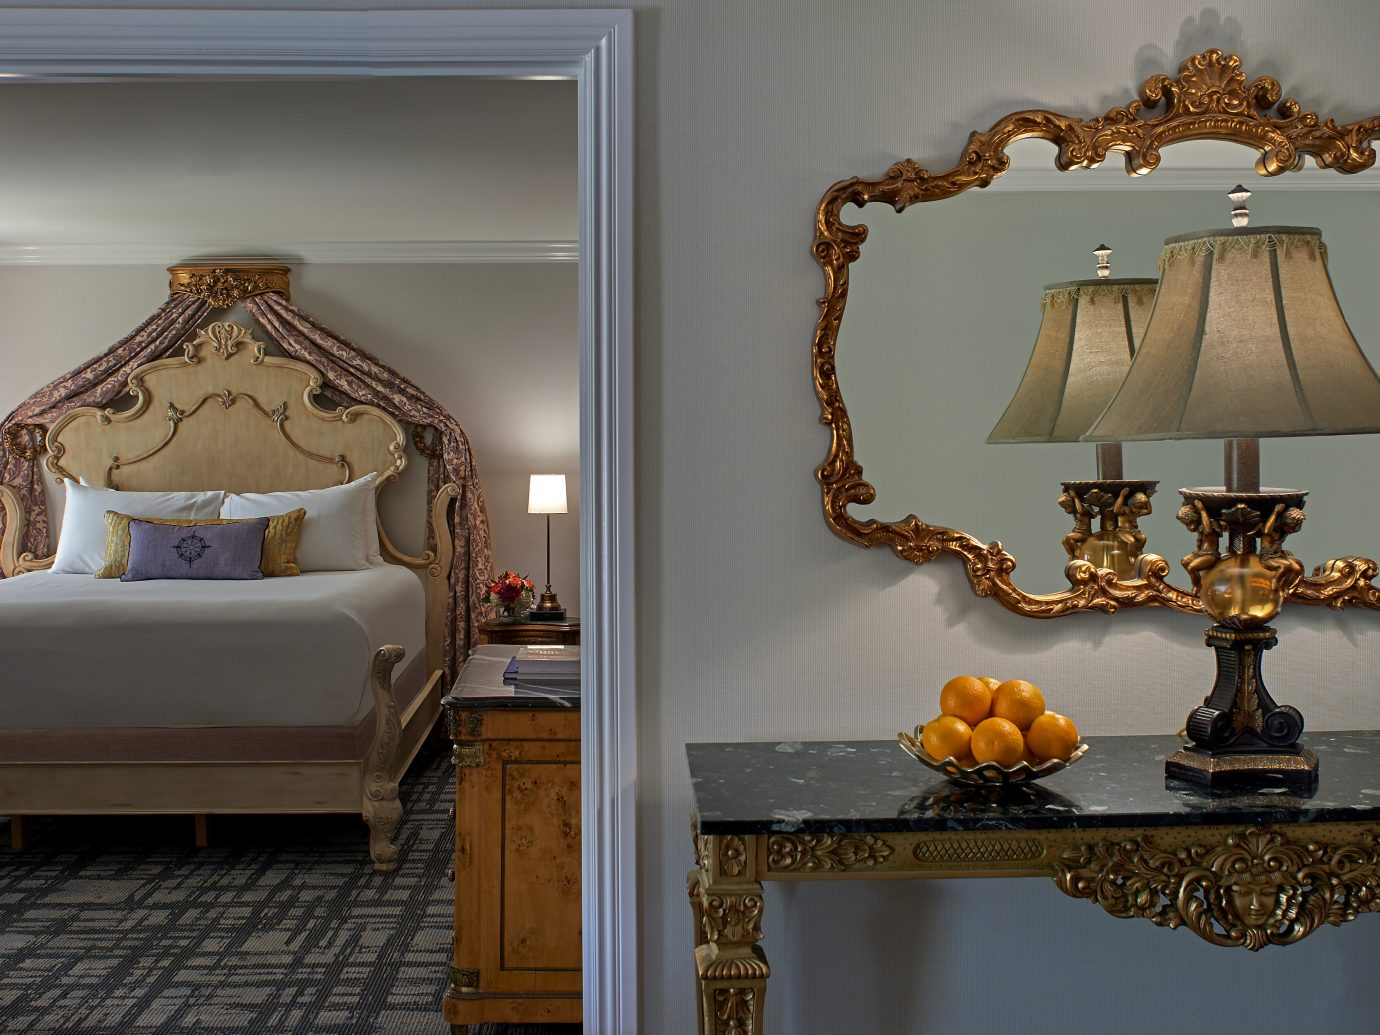 Suite at Hotel Viking showing a mirror and table in the outer room and a queen size bed inside the room